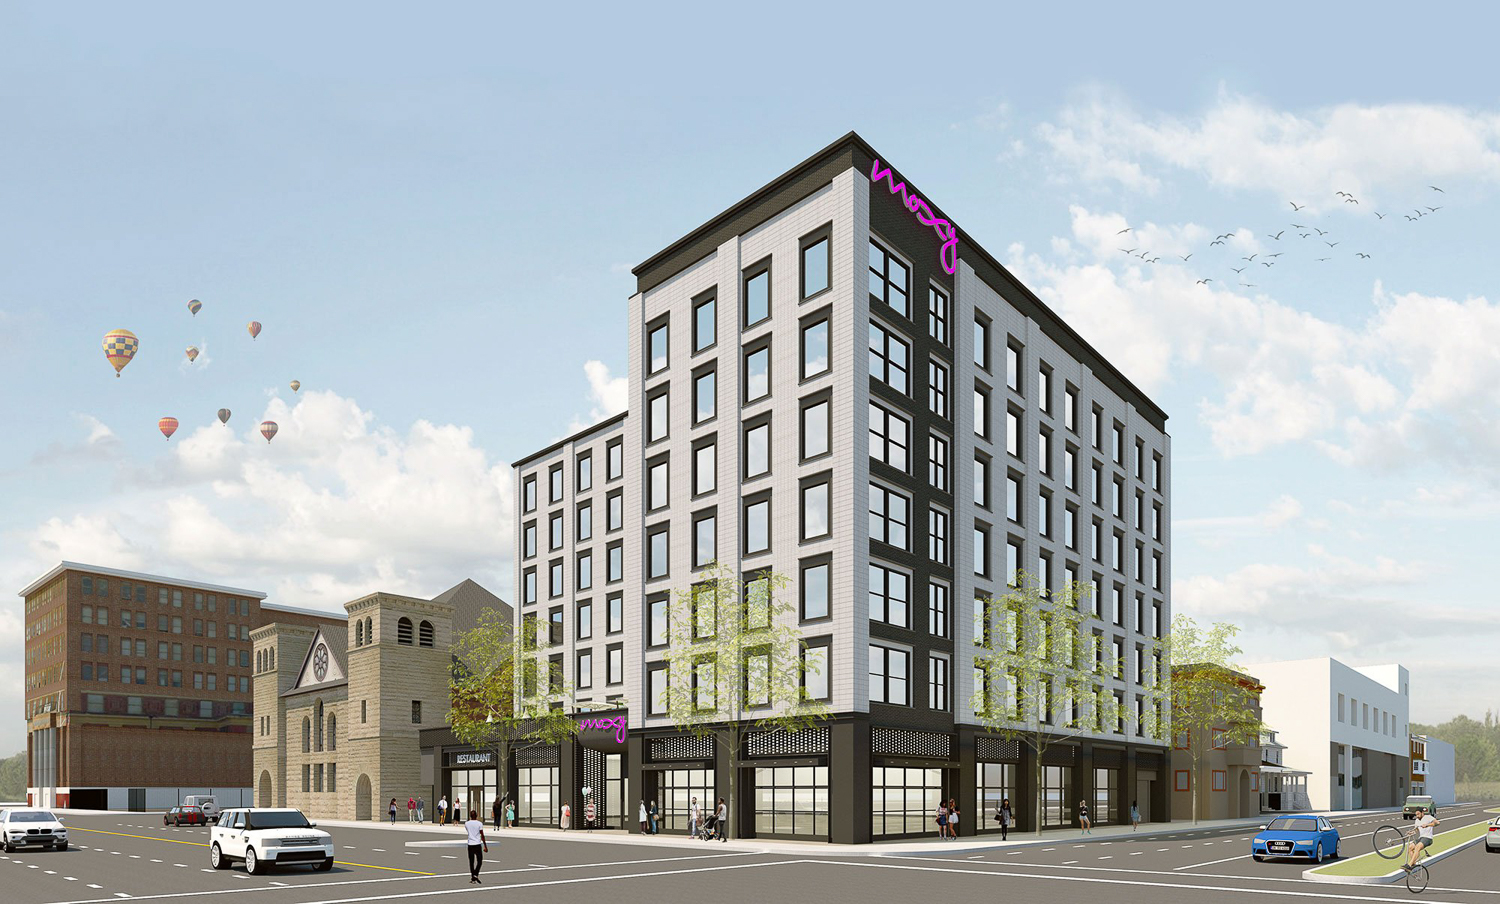 Moxy Hotel at 2225 Telegraph Avenue, rendering by Lowney Architects